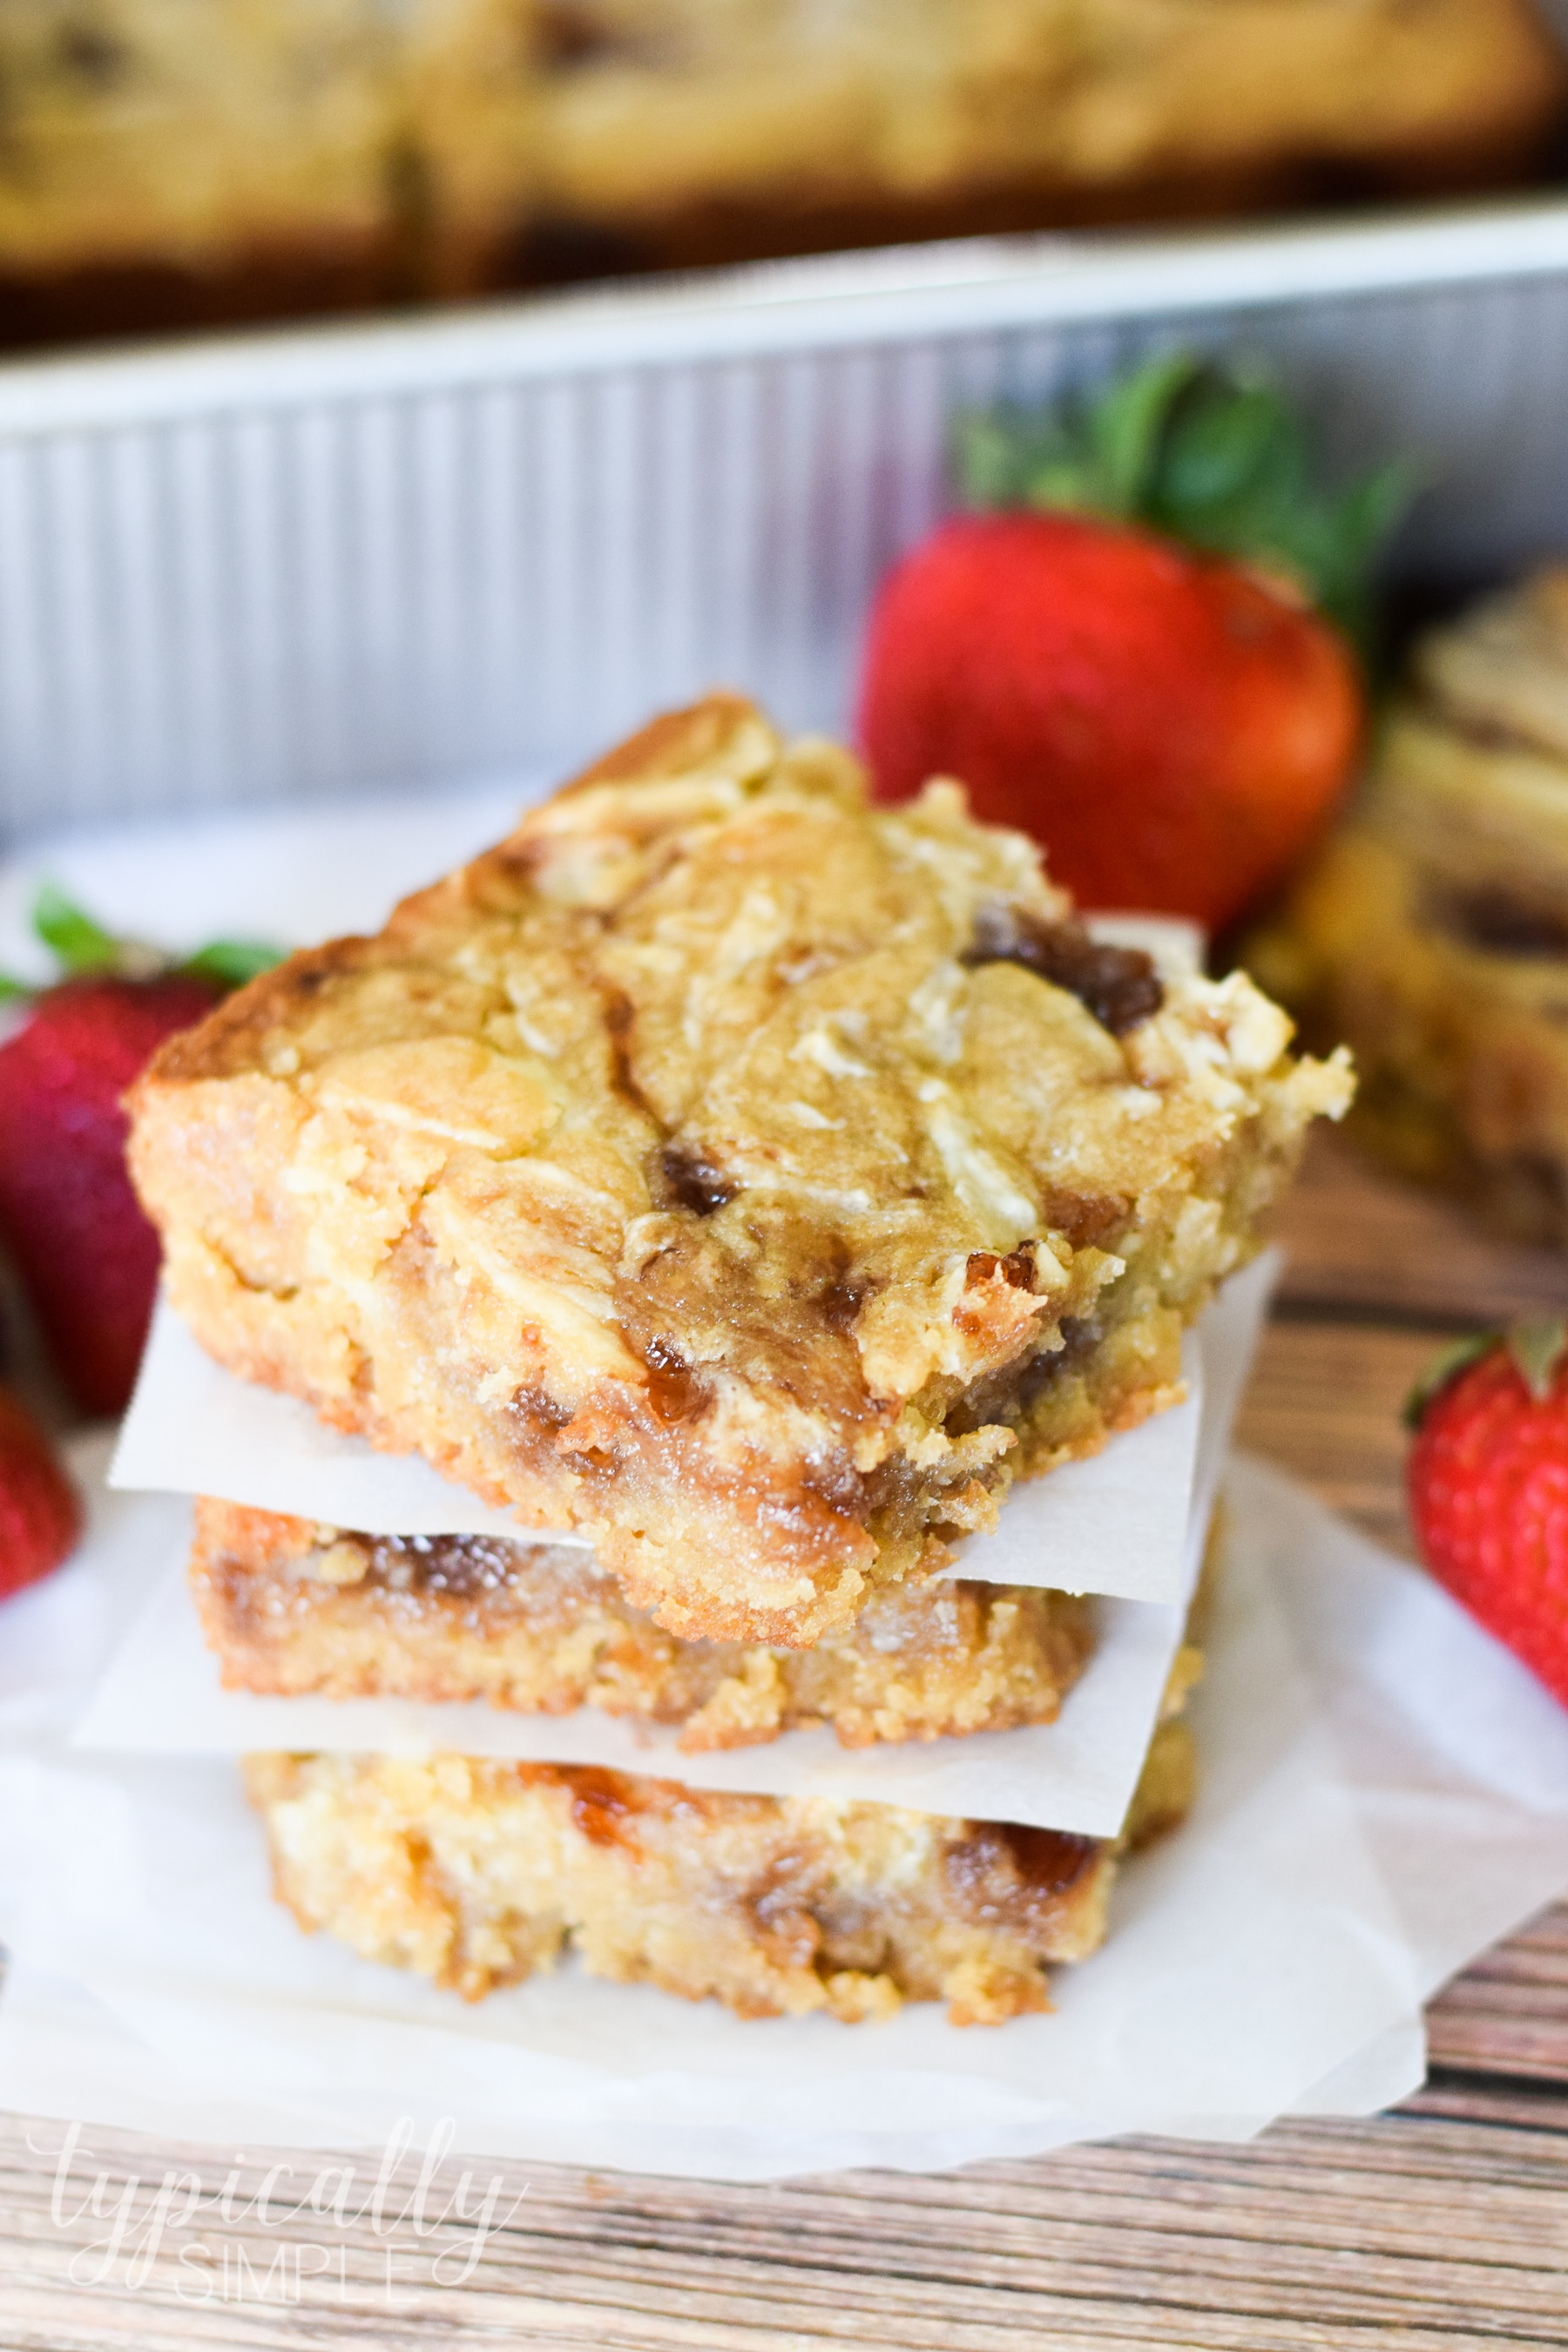 These strawberry swirl cheesecake blondie bars are a decadent treat that is quite easy to make. With some basic baking ingredients and a few minutes of prep they will quickly become your new go-to dessert to make for parties!